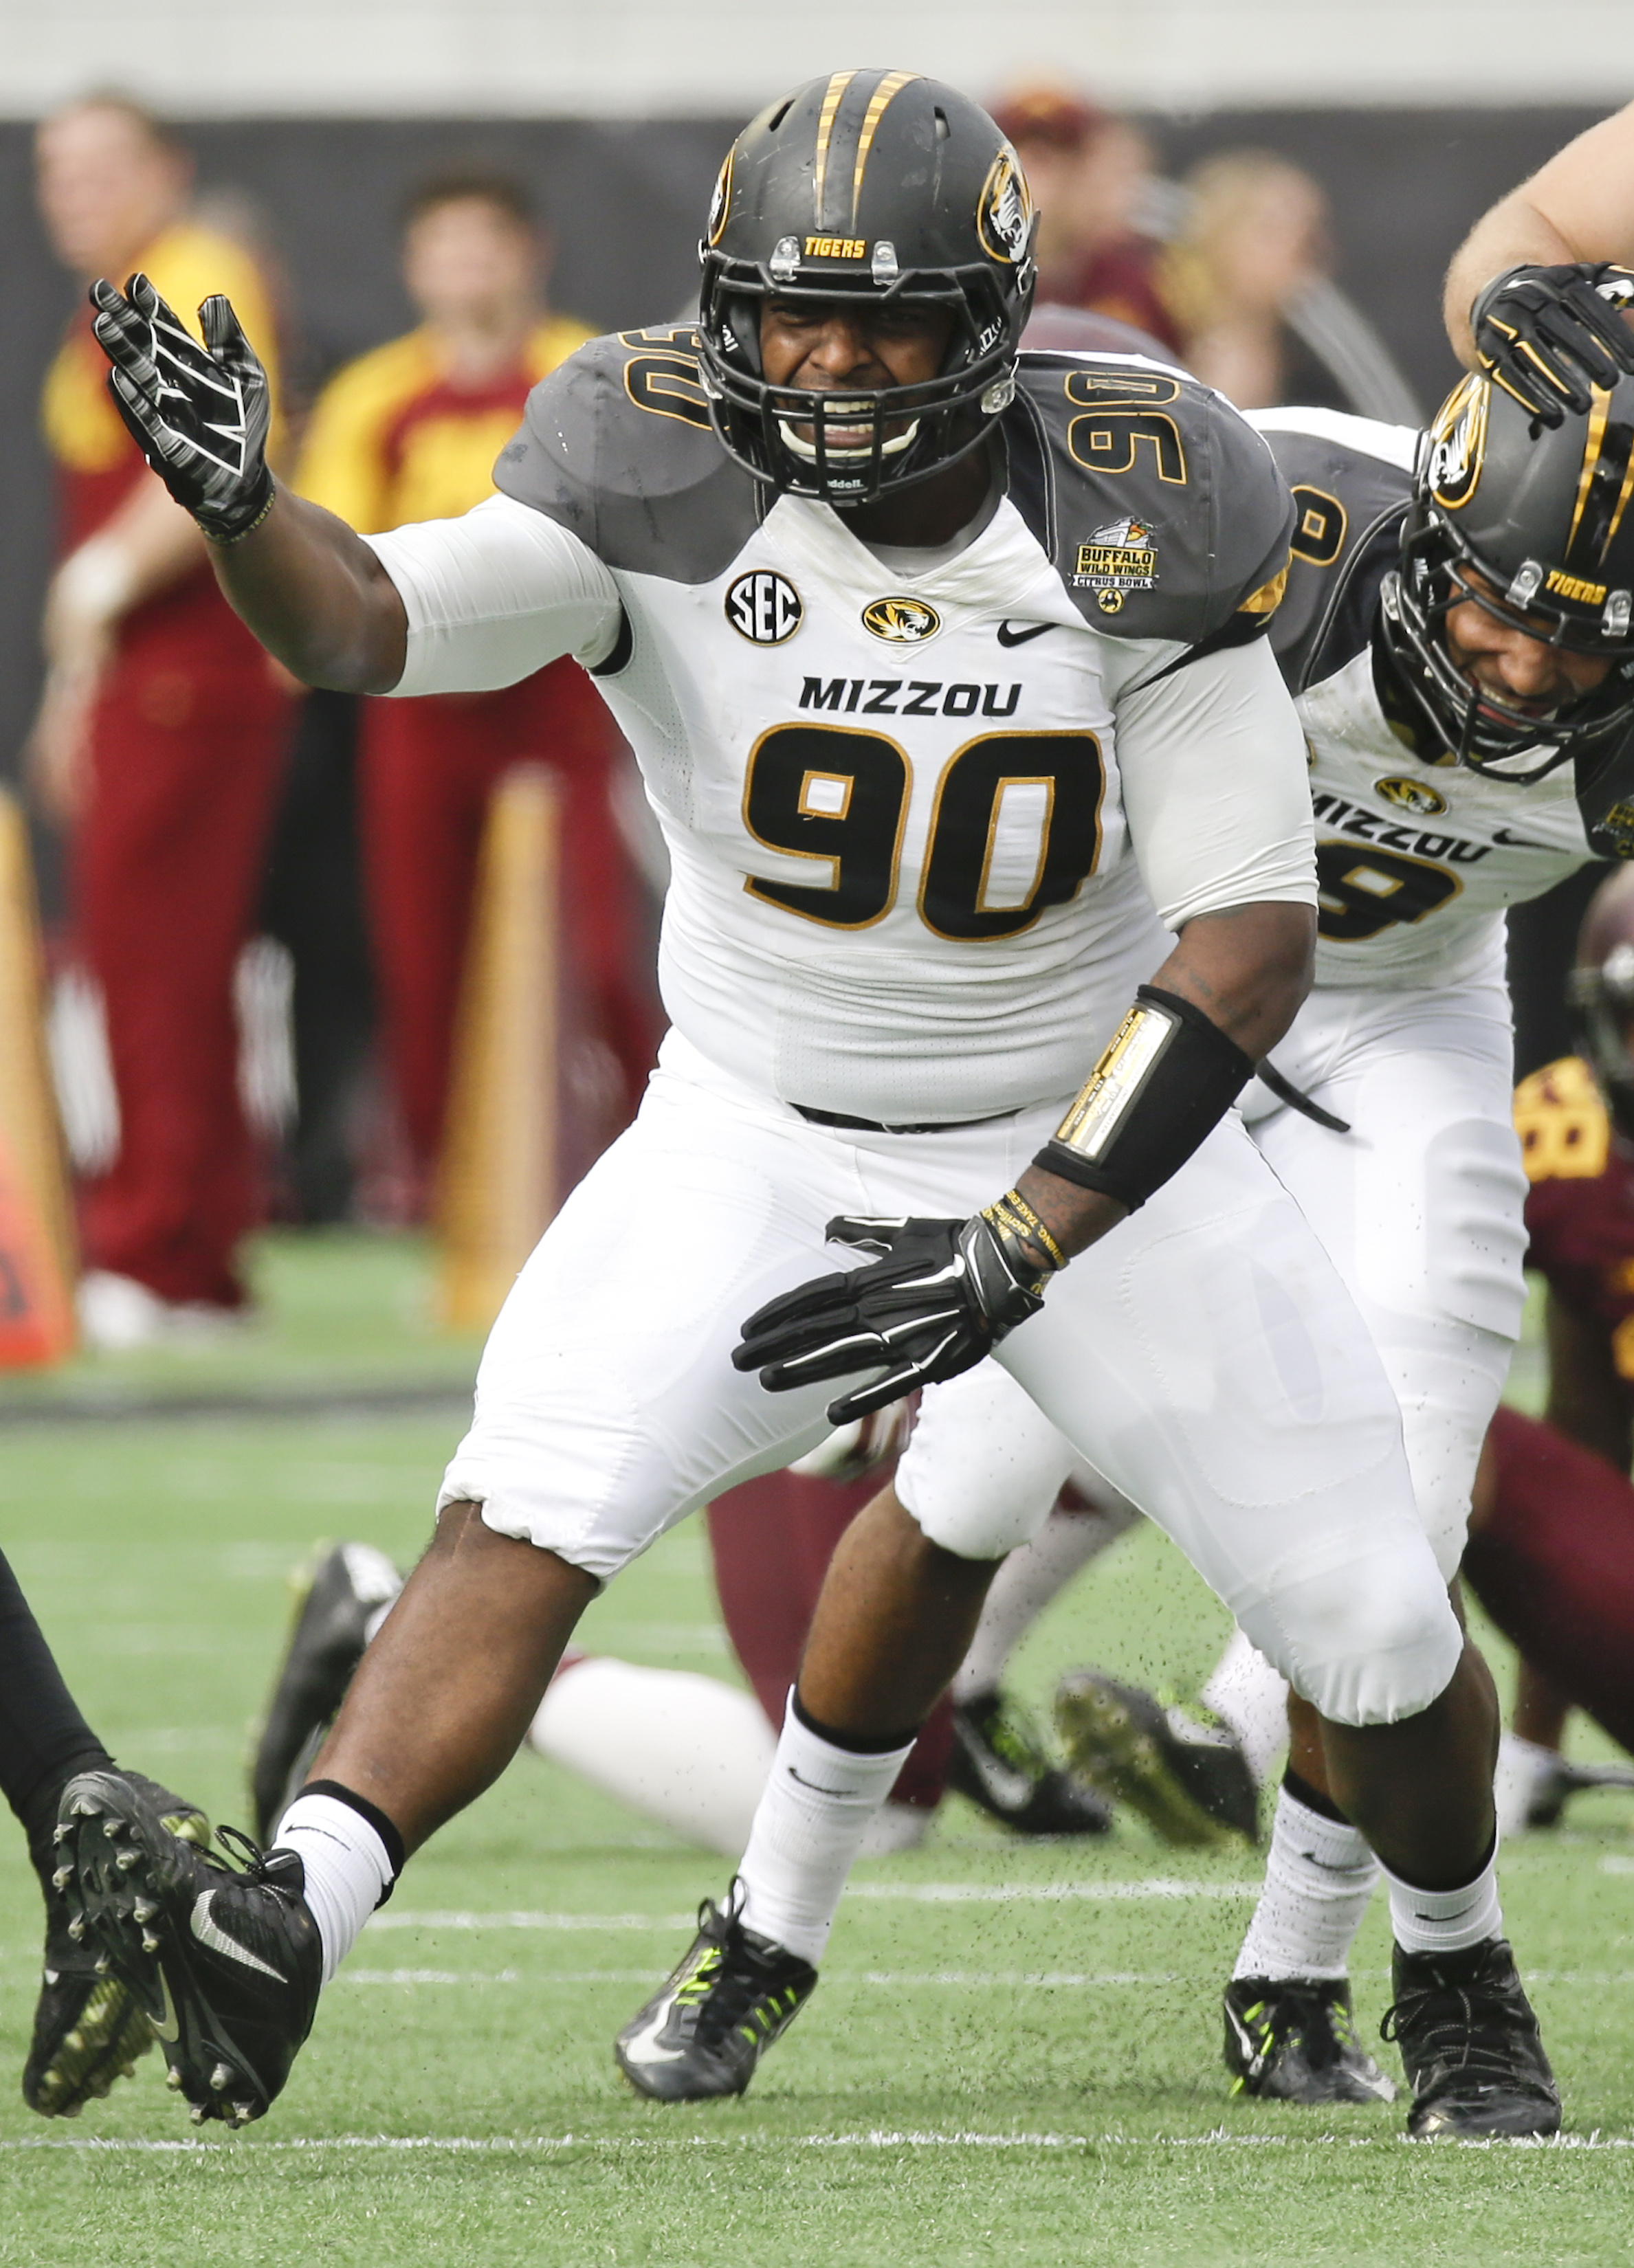 Missouri defensive lineman Harold Brantley (90) signals a first down after he ran for a first down past the Minnesota defensive on a fake punt play during the first half of the Citrus Bowl NCAA college football game in Orlando, Fla., Thursday, Jan. 1, 201